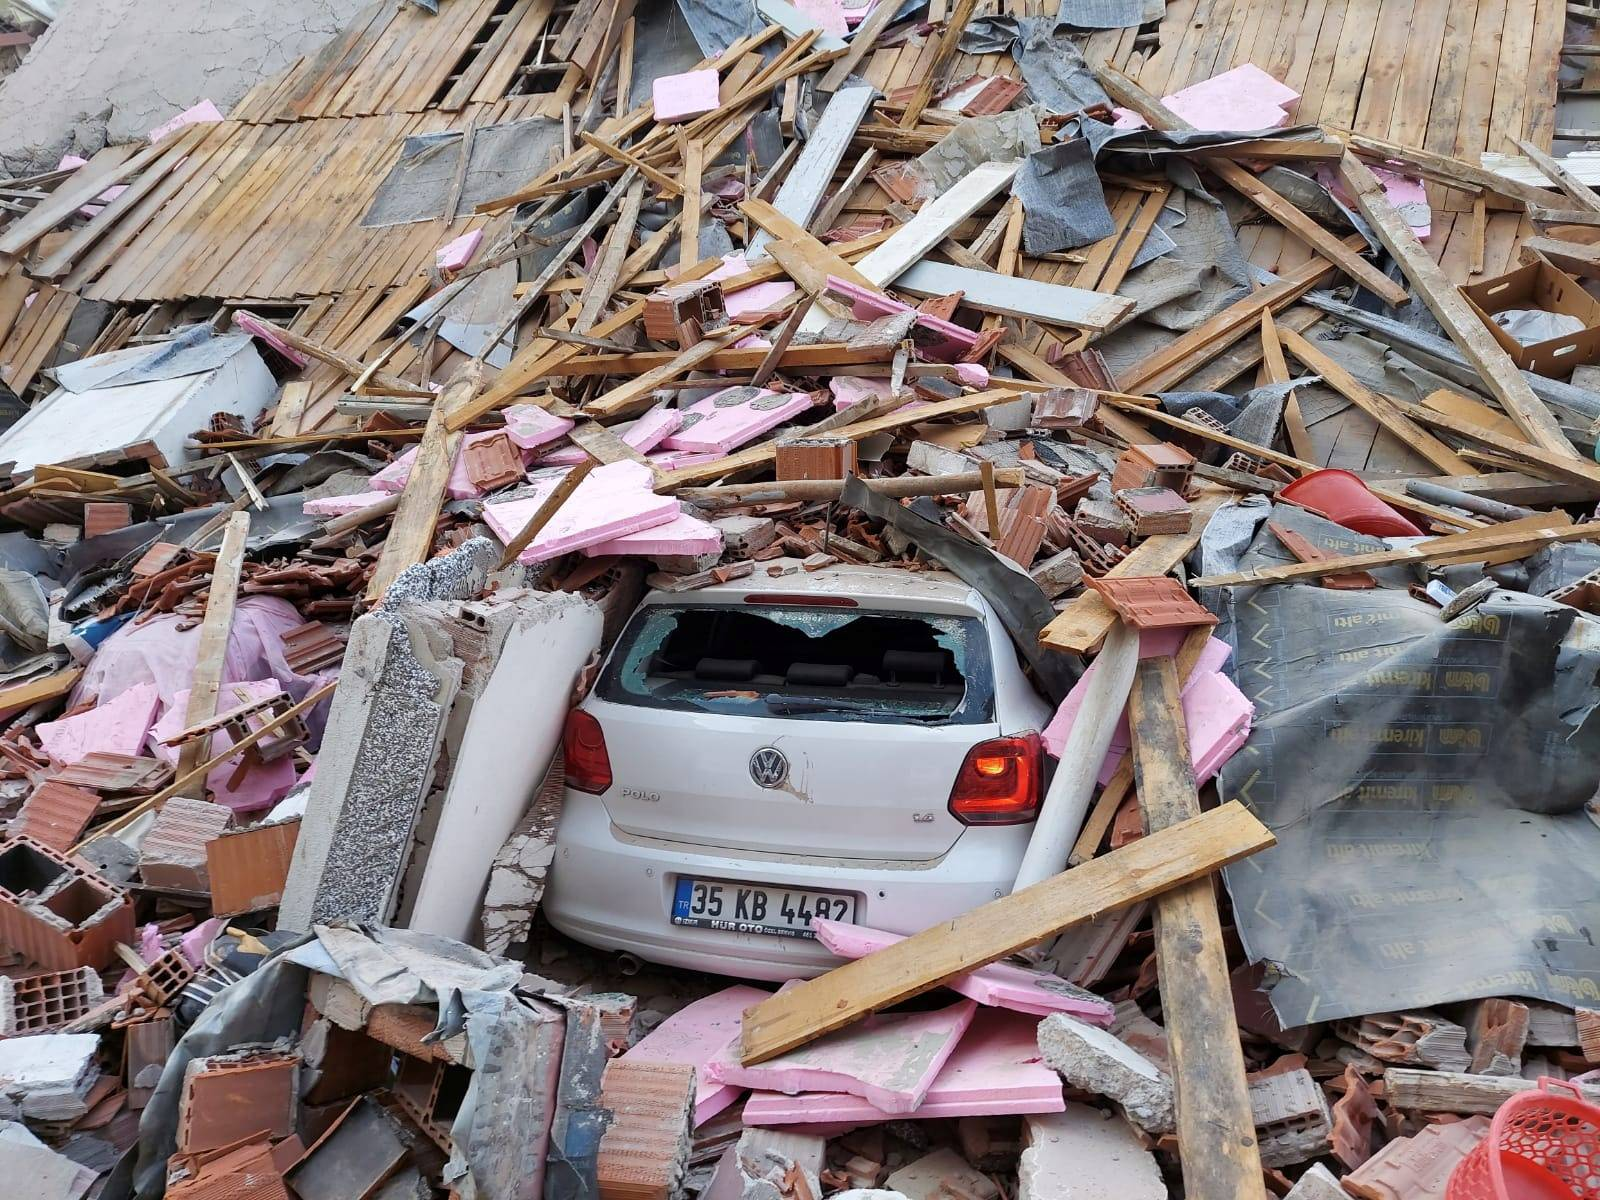 A building collapsed after a strong earthquake struck the Aegean Sea where some buildings collapsed in the coastal province of Izmir